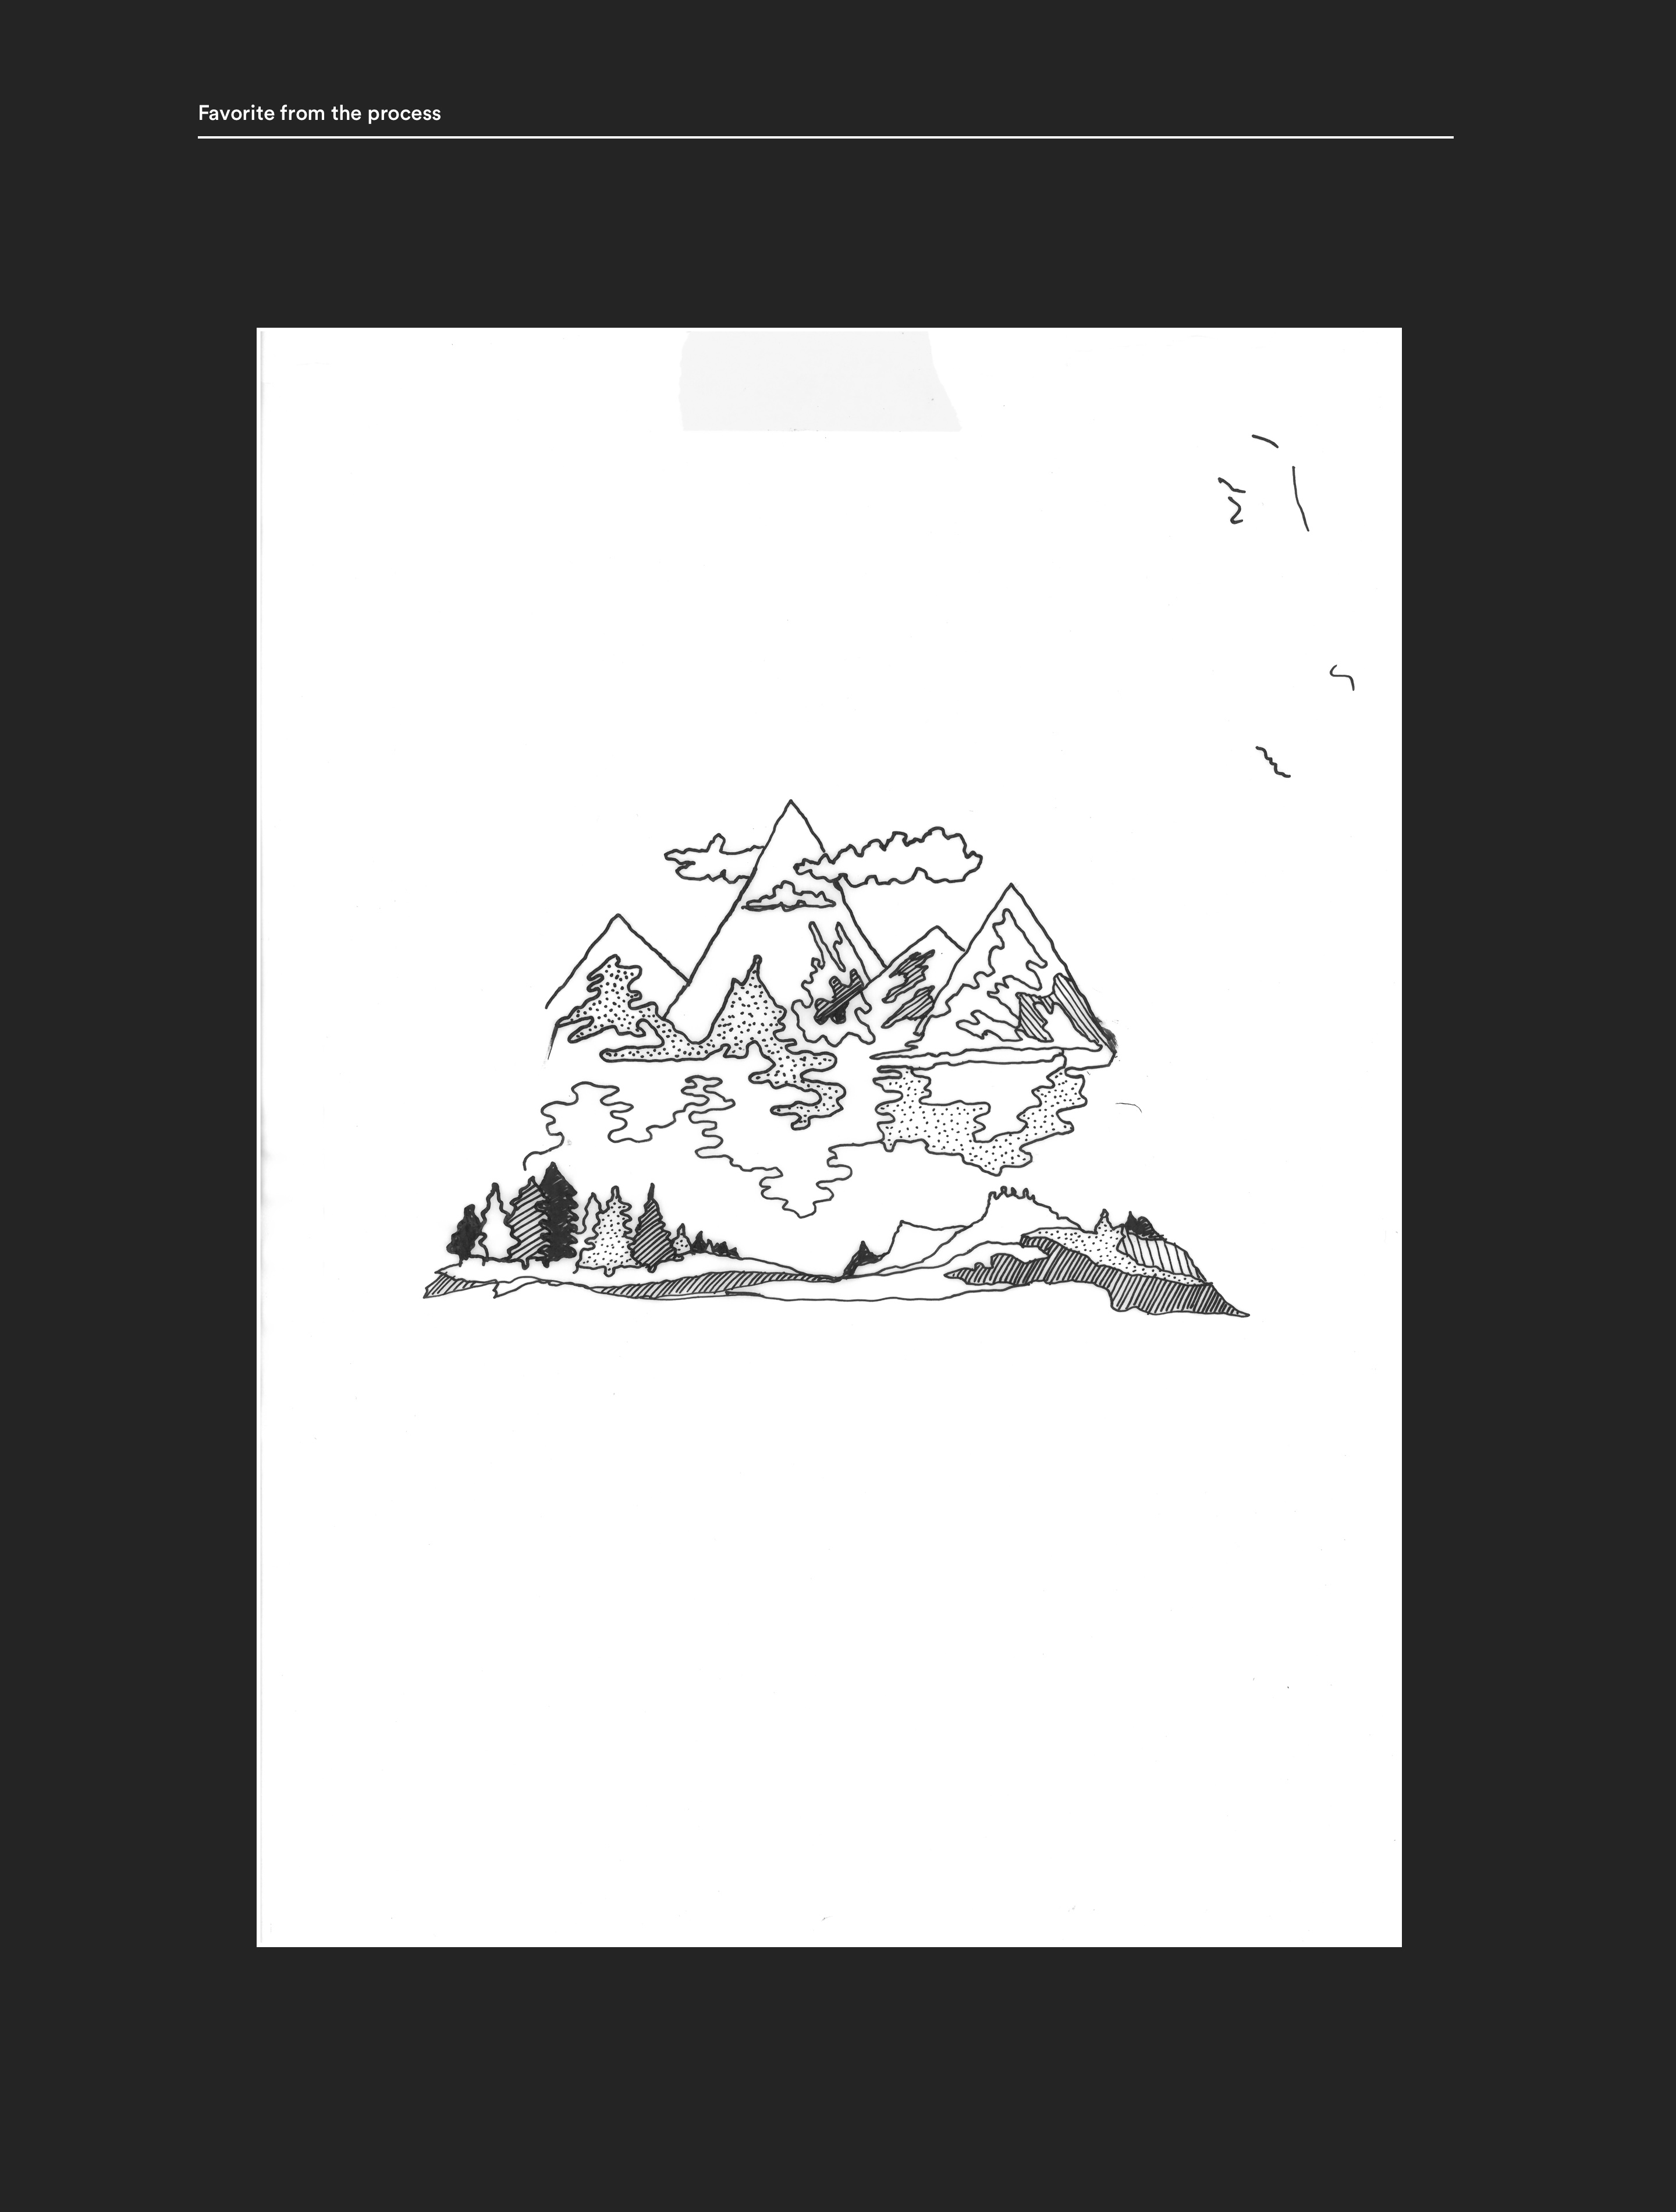 Graphical expressions for Houdini Sportswear. Draft from the process. Nature and mountains drawn with ink on paper.